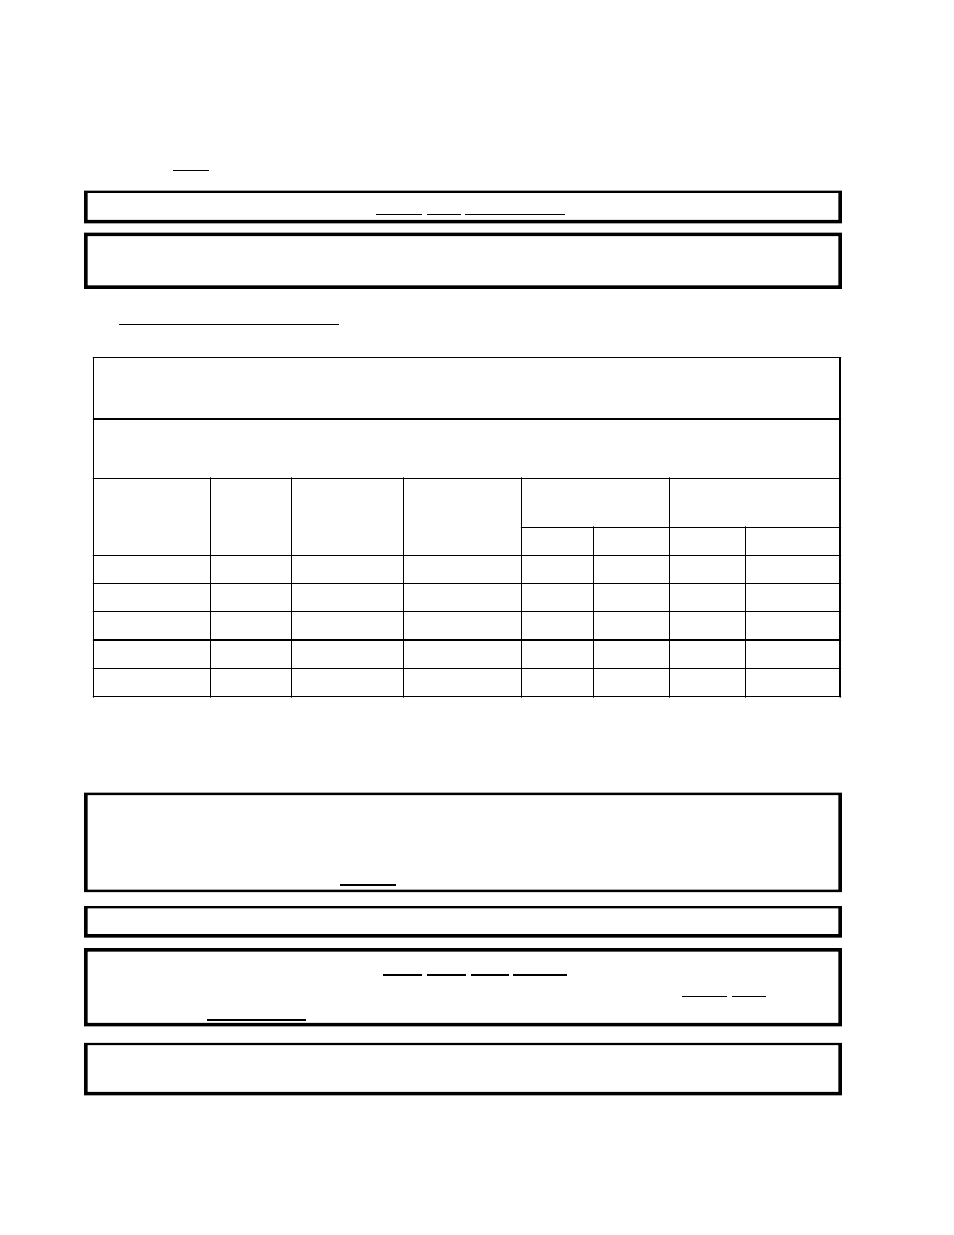 hight resolution of mlg 96d electrical service specifications per dryer american dryer corp ml 96d user manual page 24 43